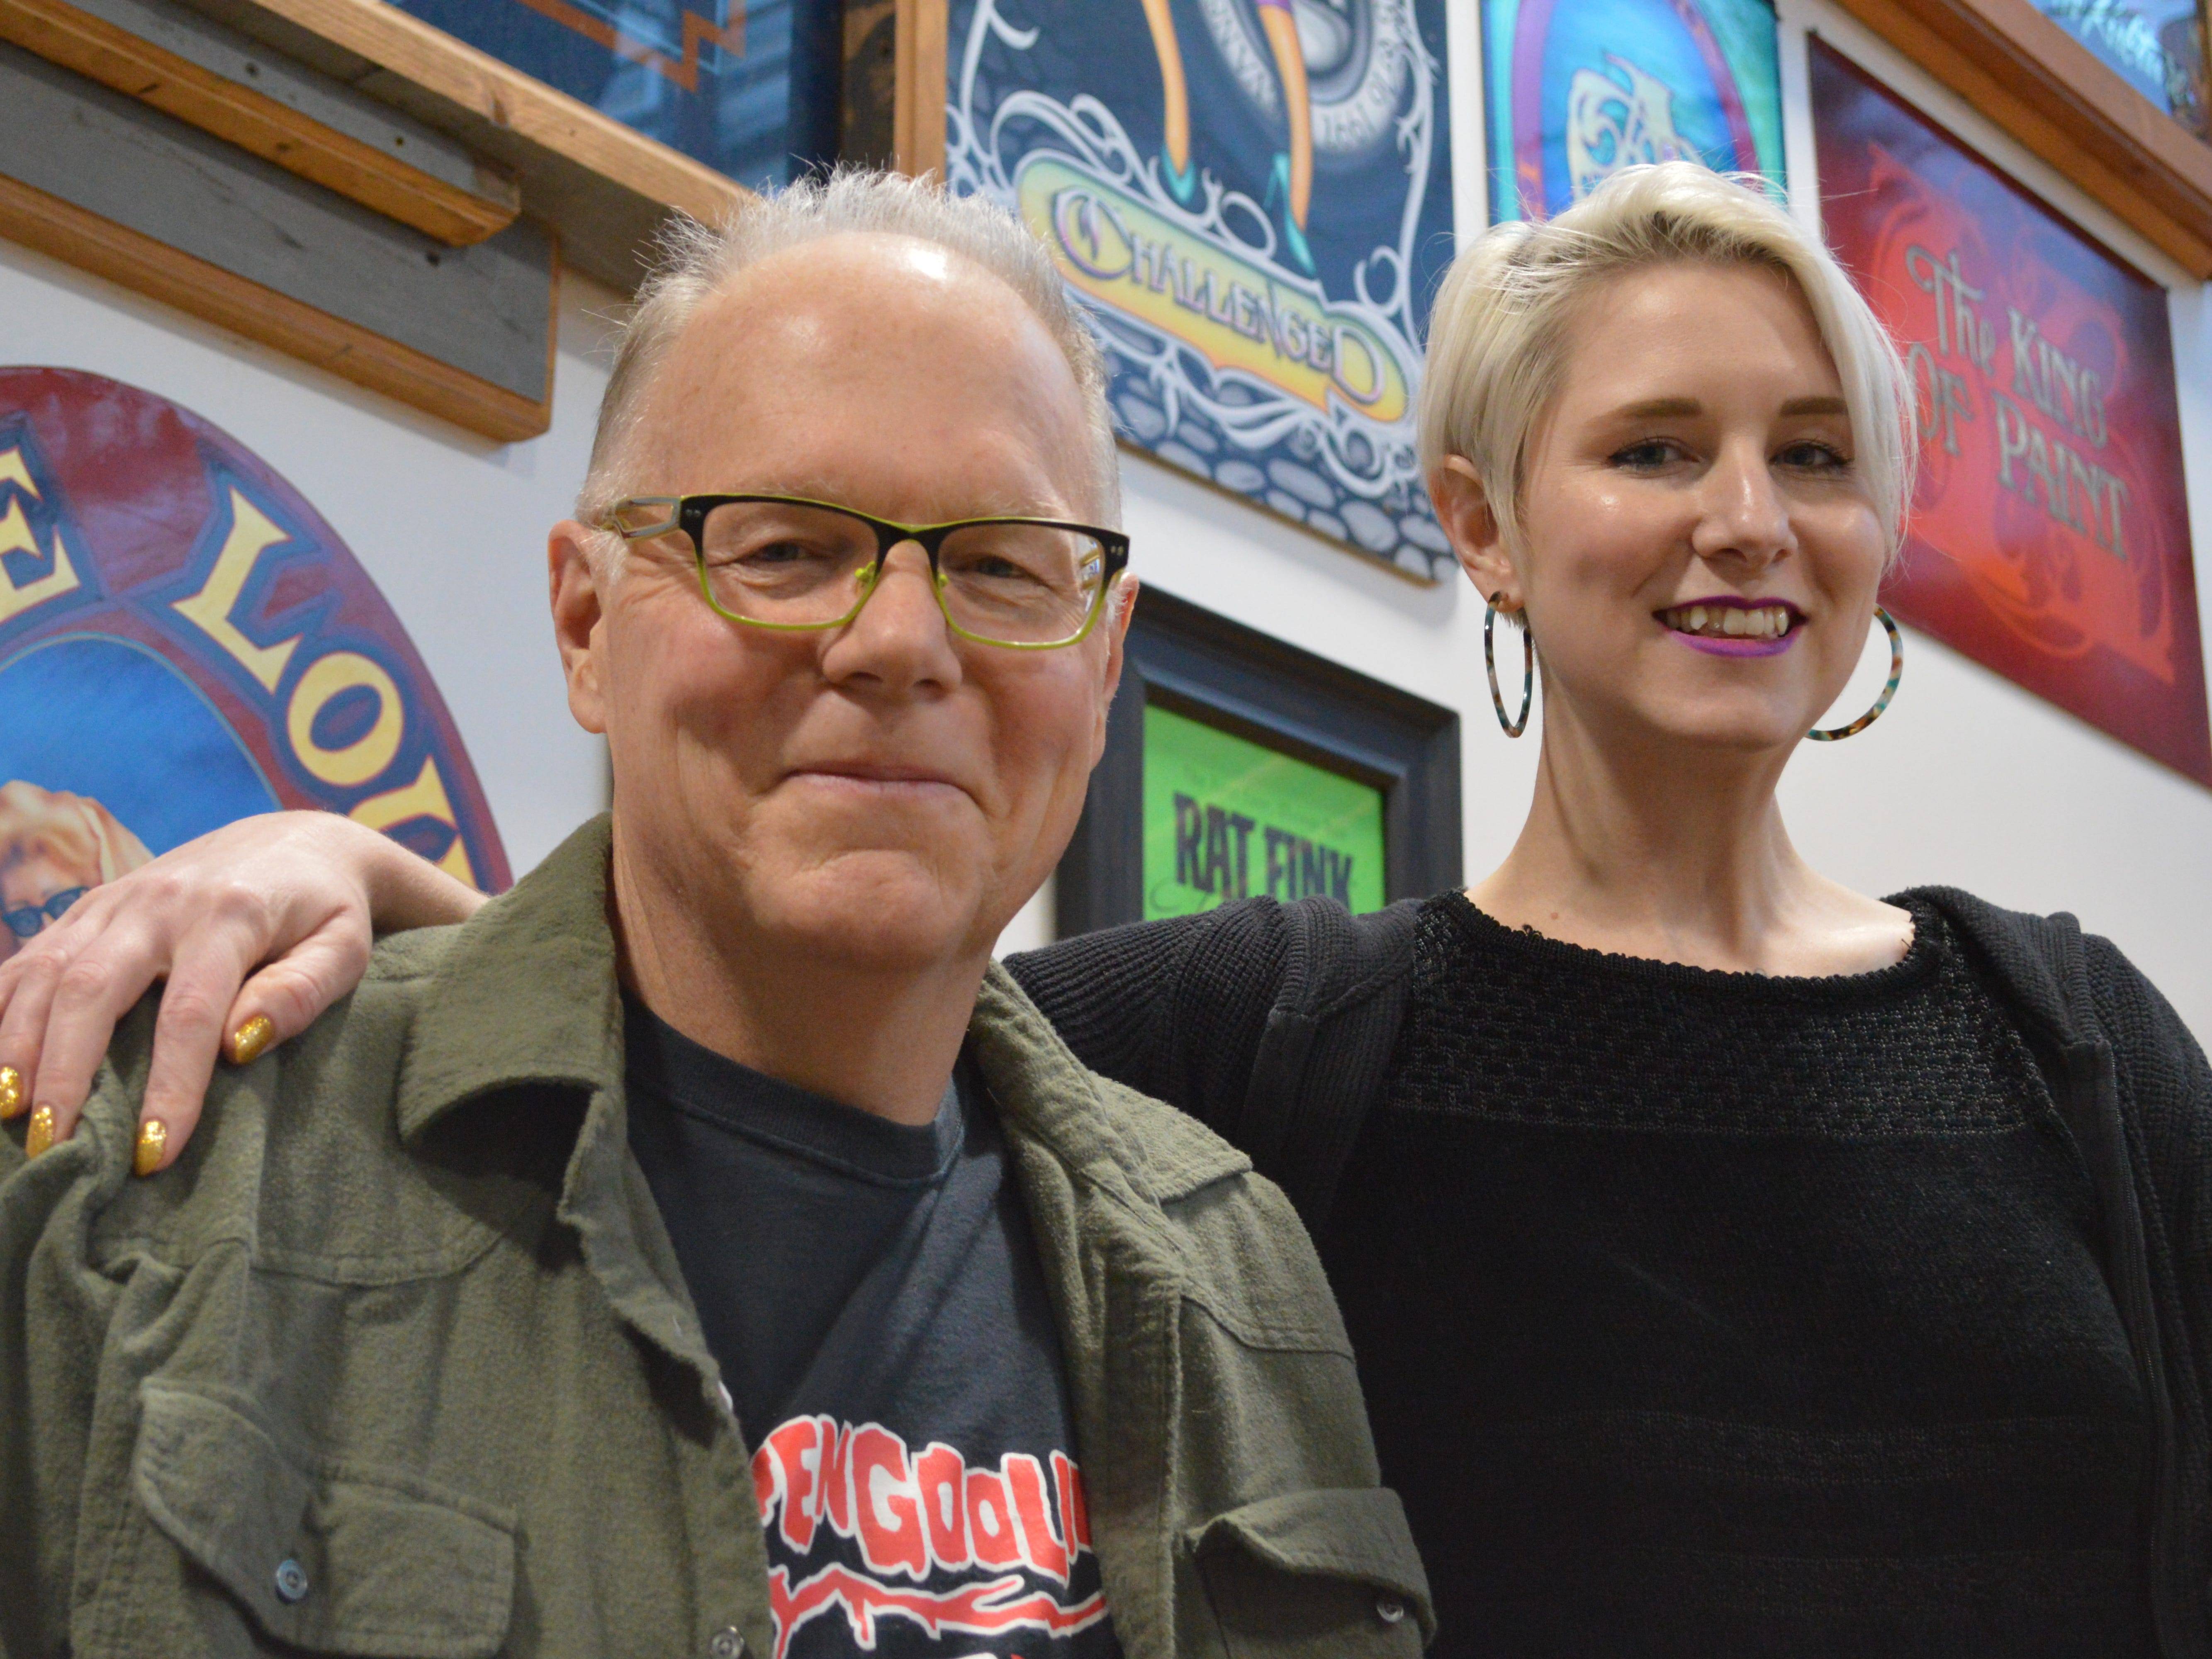 Danielle Williams-Szydel is learning sign painting from her dad, Jeff Williams.